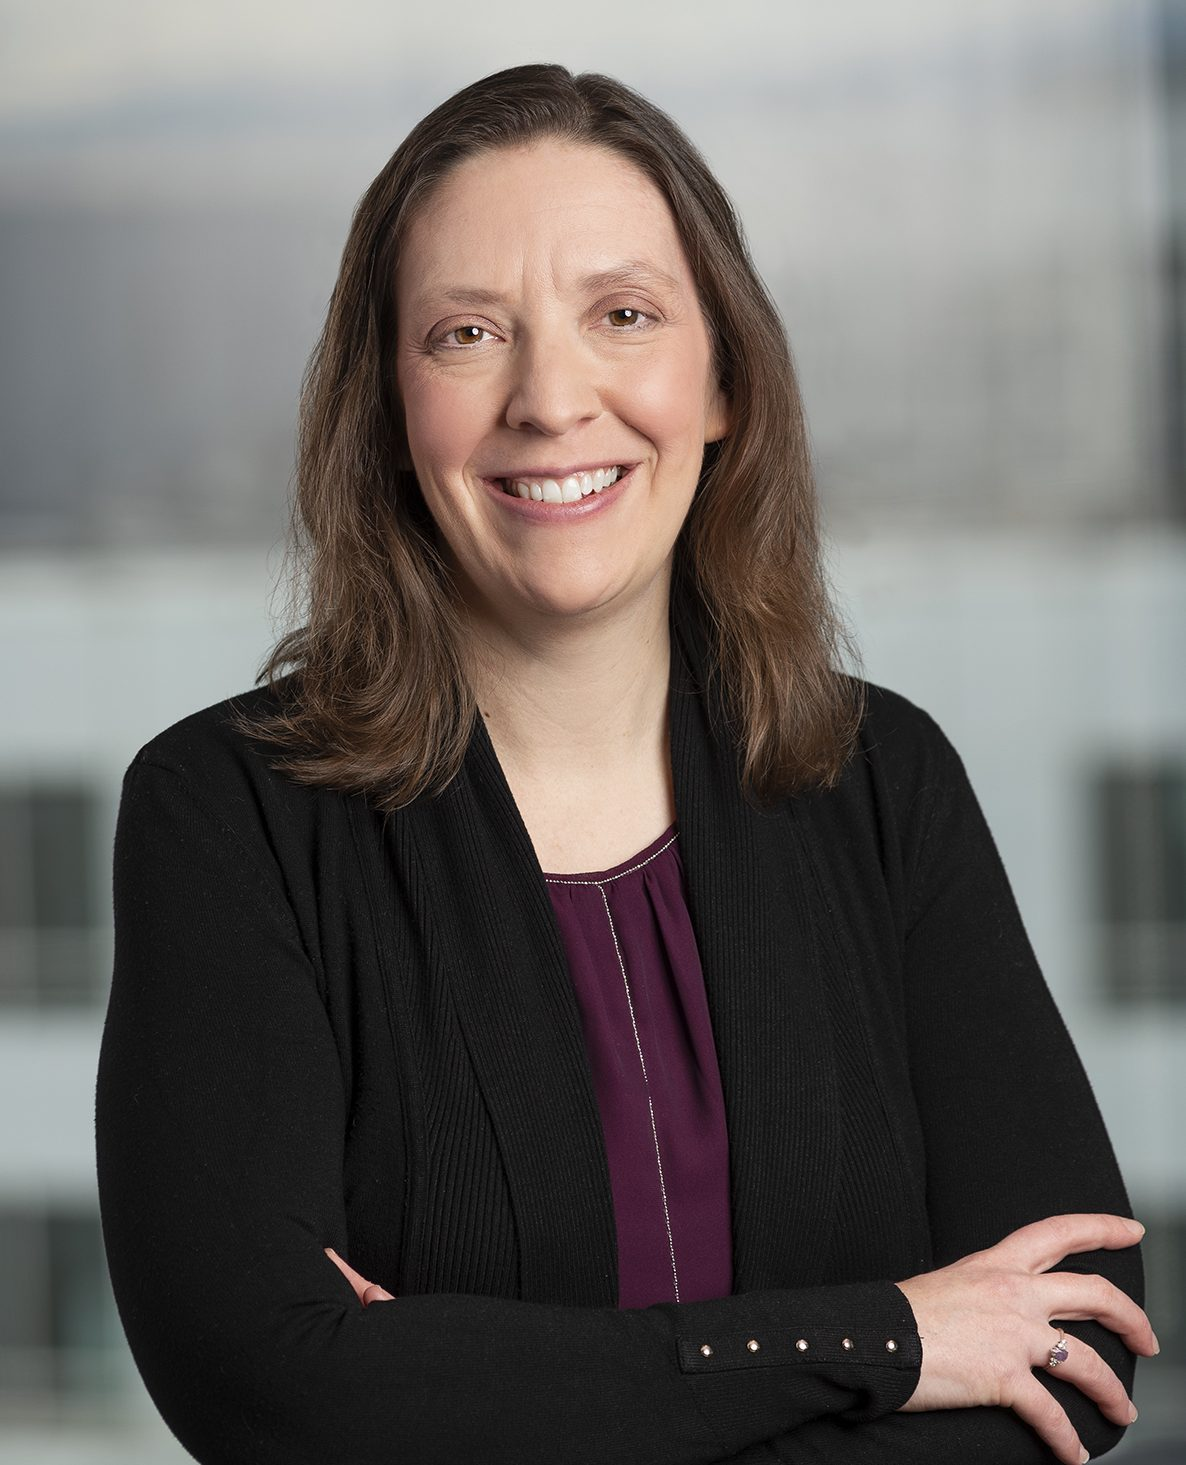 Angela M. Domitrovich, Ph.D.